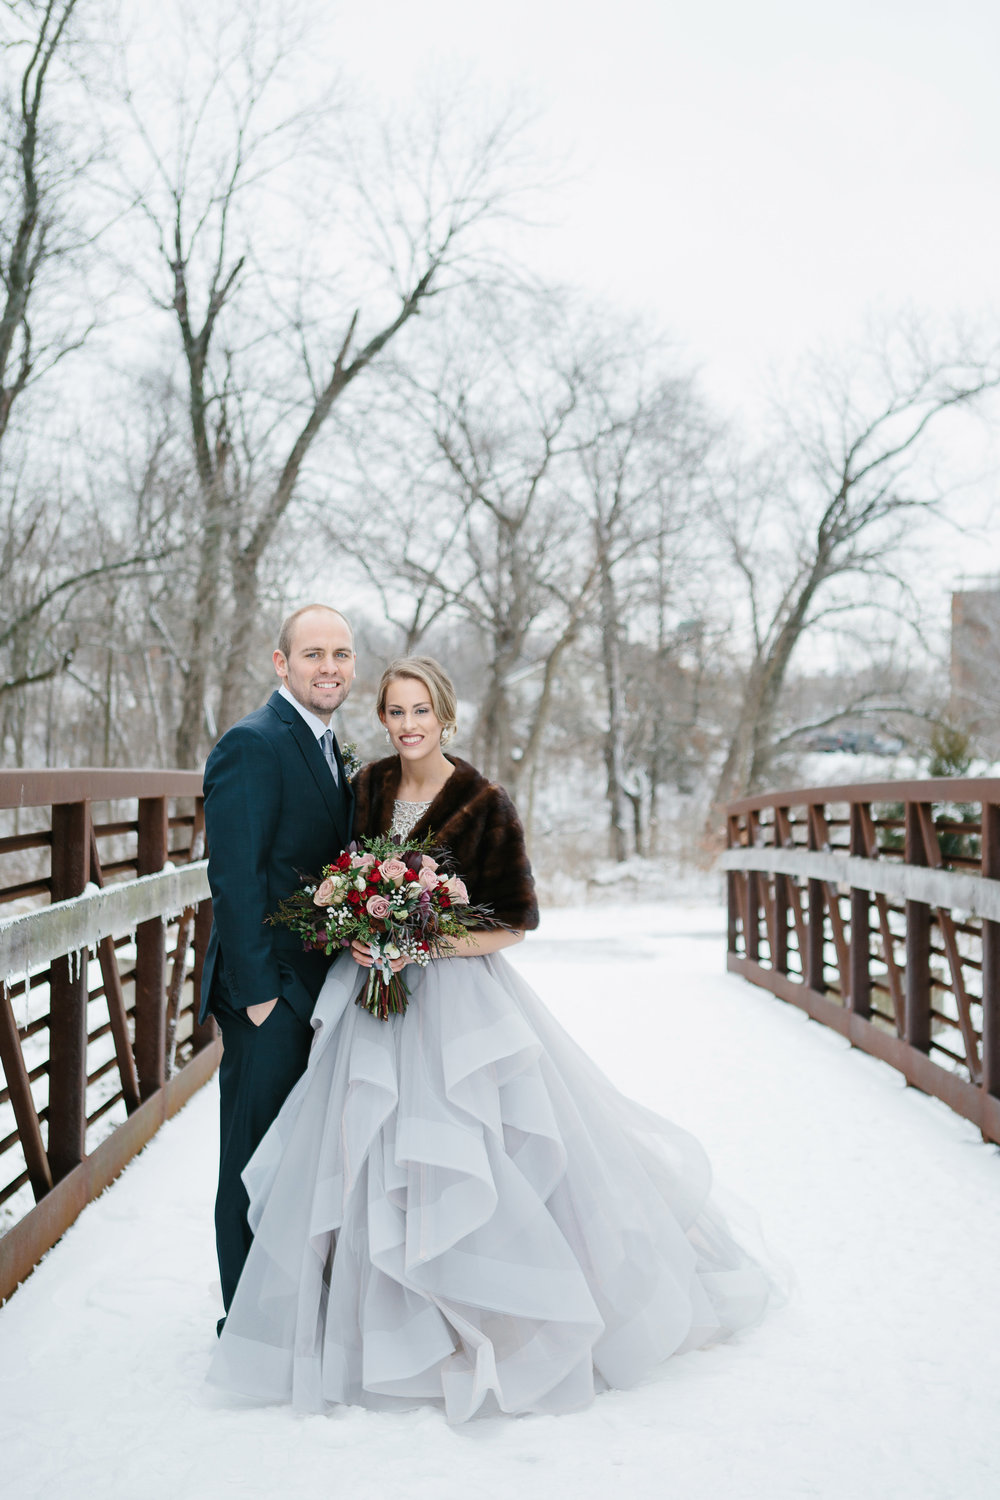 Sarah + Shane | December Wedding, Ironwoods Lodge, Overland Park, Kansas